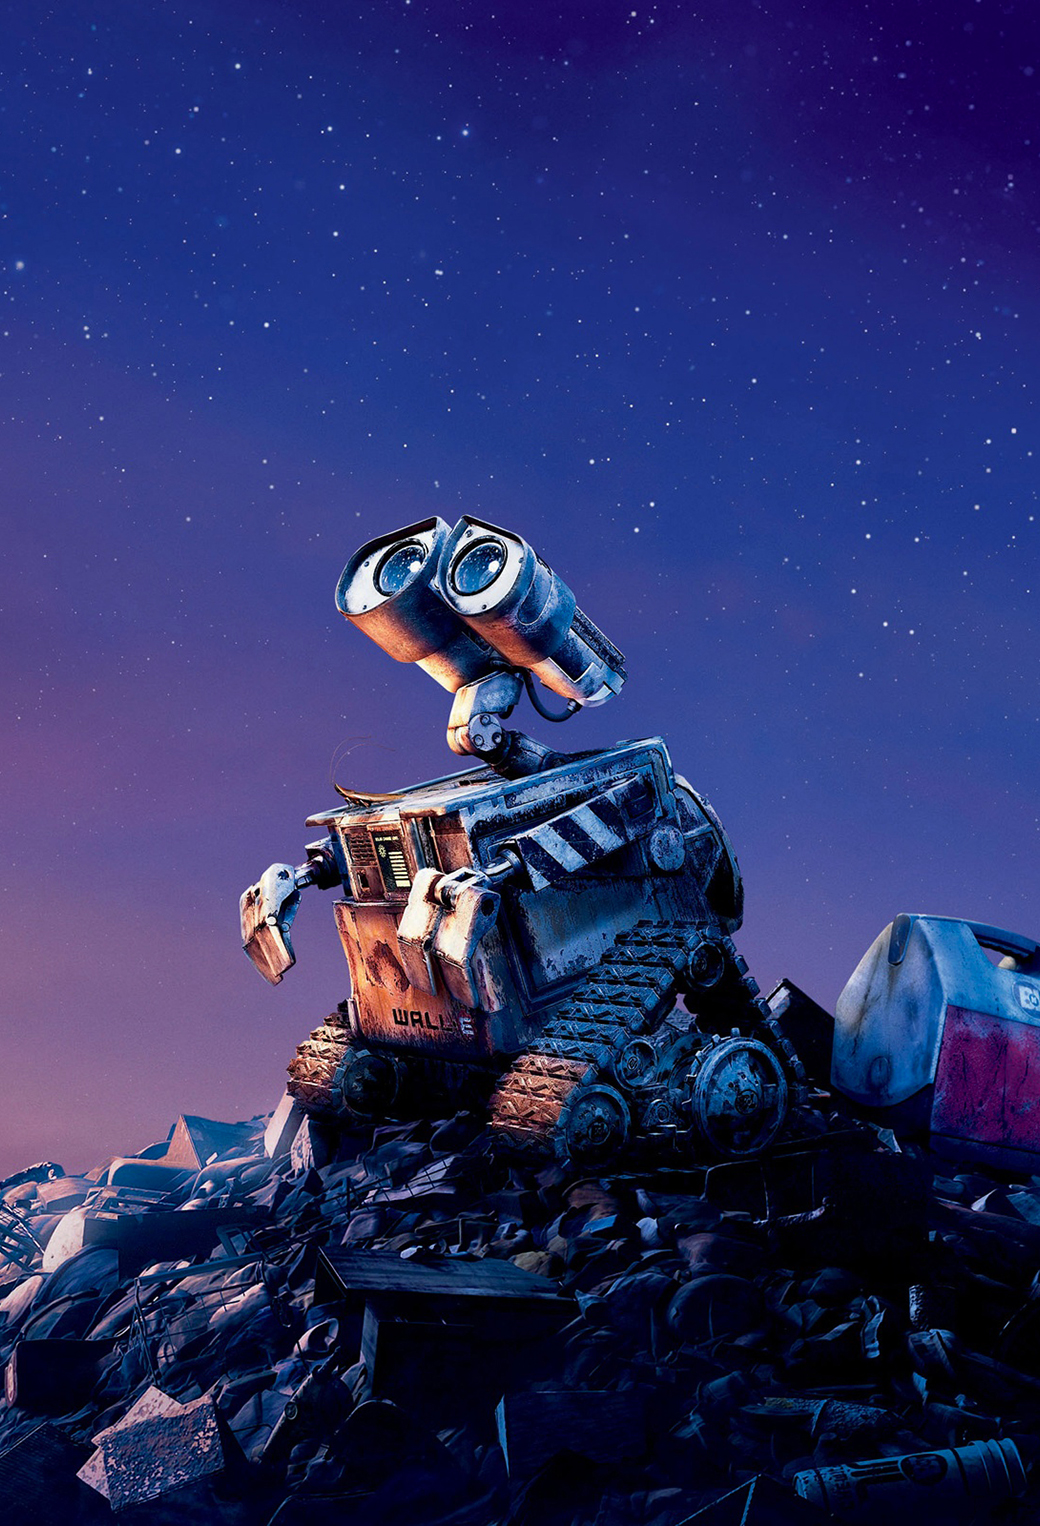 Wall E on Earth 3Wallpapers iPhone parallax Wall E on Earth